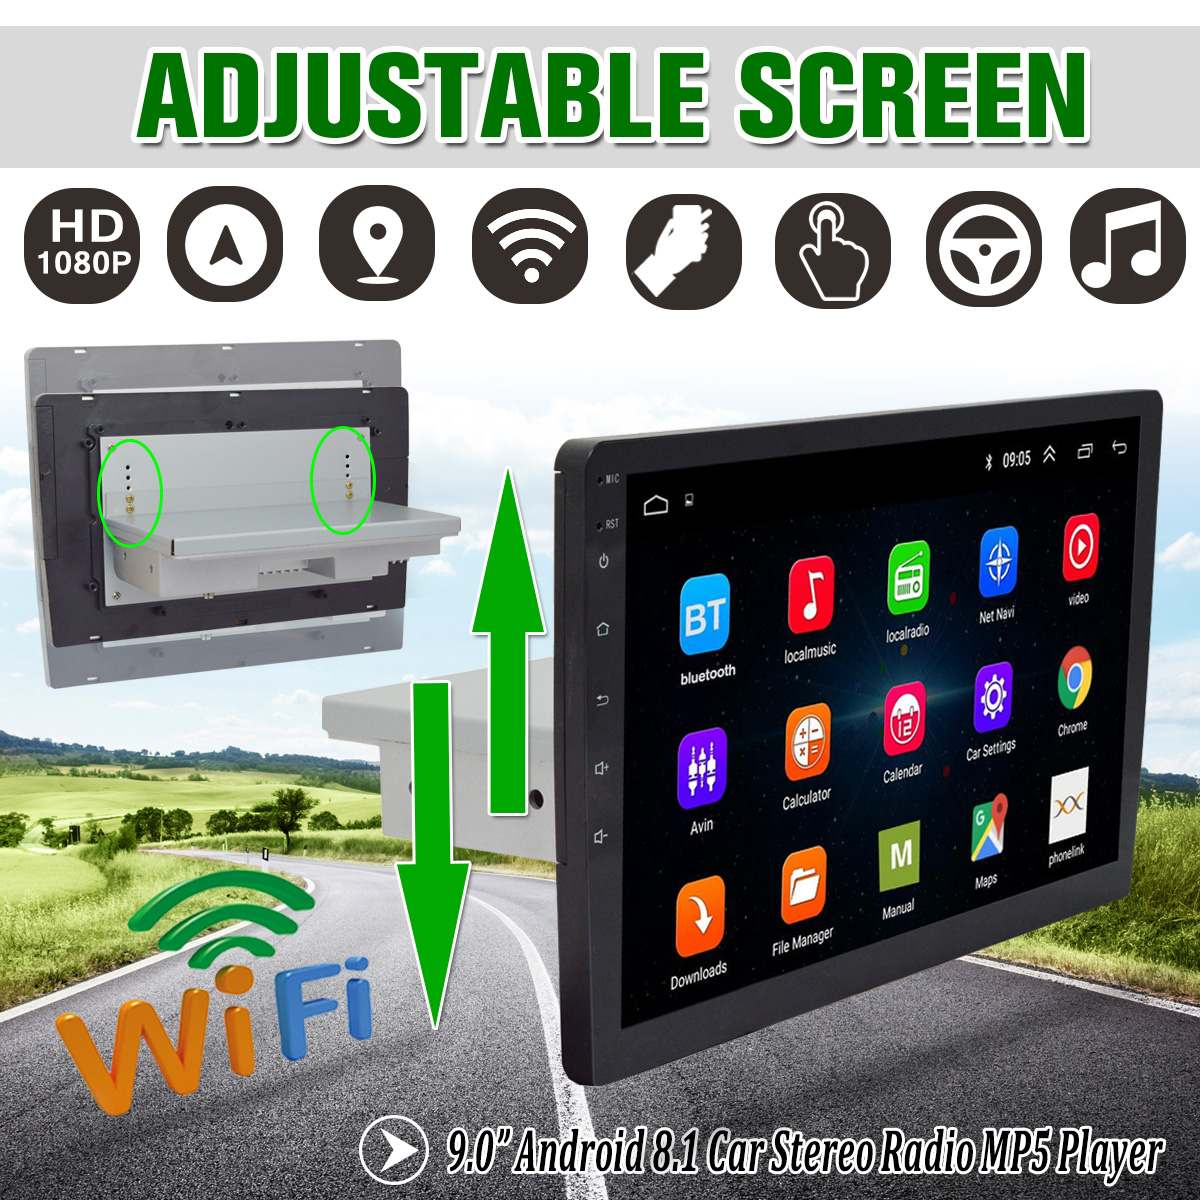 9 Car Multimedia Player for Android 8.1 Adjustable Screen Car Stereo 1Din Up Down Moving MP5 Player GPS Nav Wifi Audio Video9 Car Multimedia Player for Android 8.1 Adjustable Screen Car Stereo 1Din Up Down Moving MP5 Player GPS Nav Wifi Audio Video